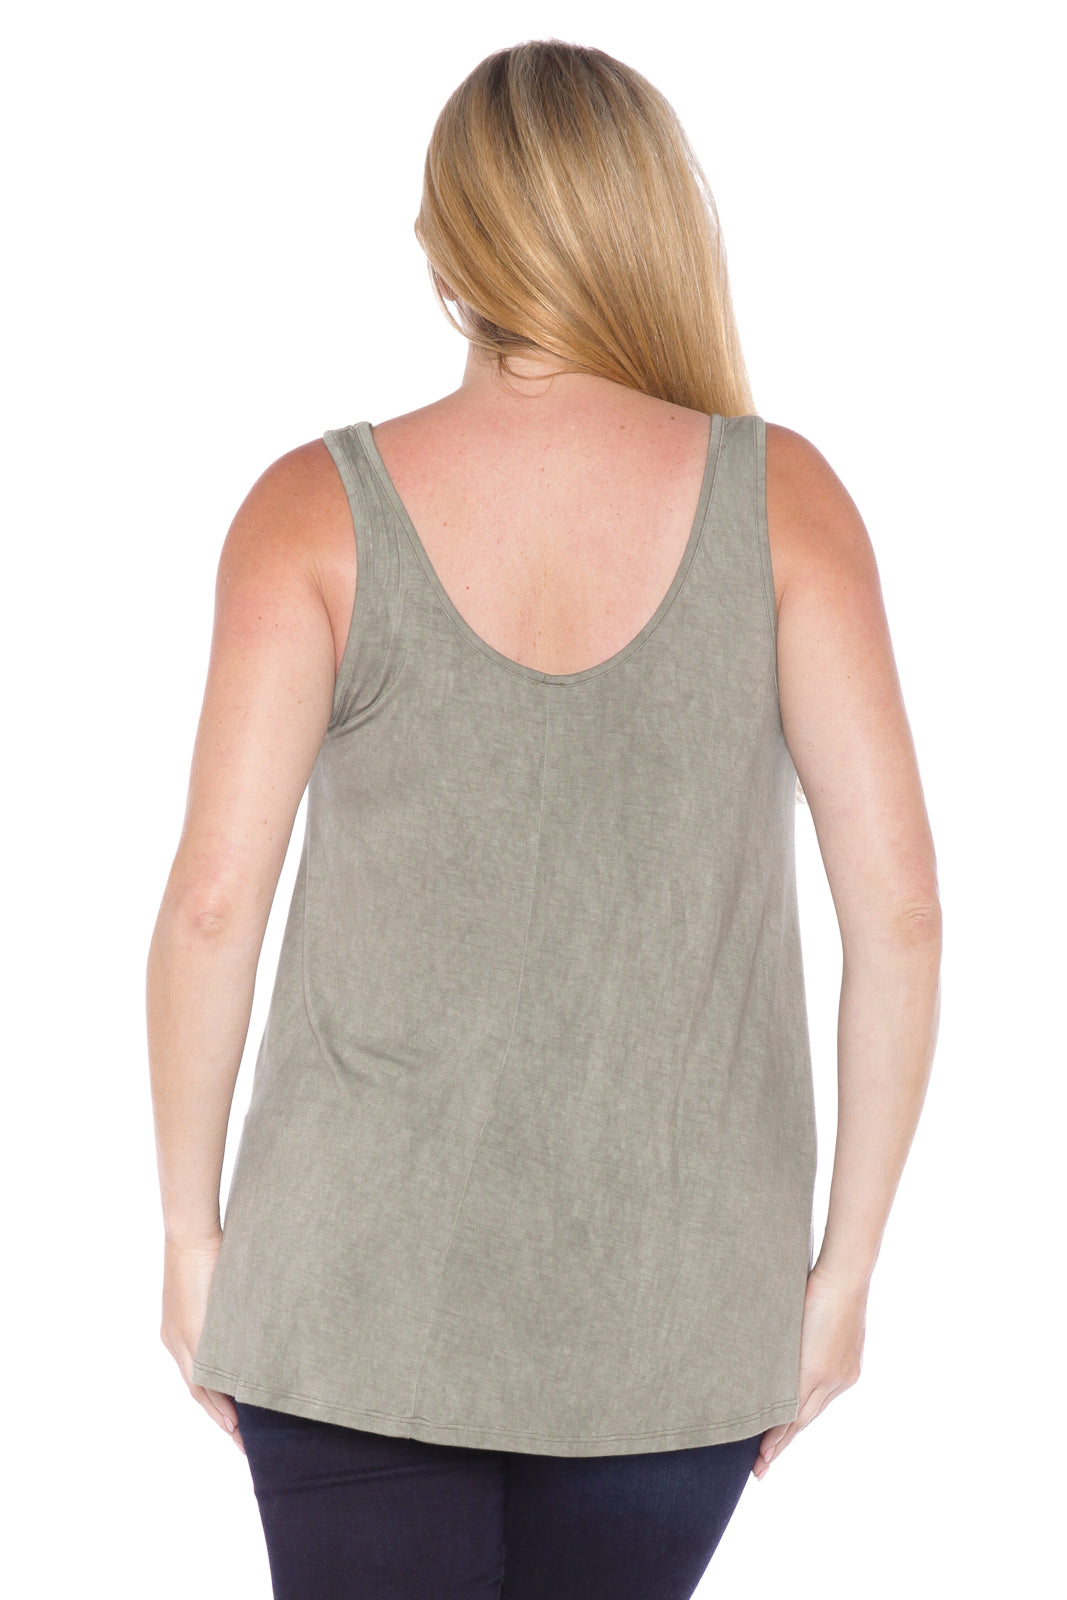 Distress Relaxed Tank - GREYSTONE